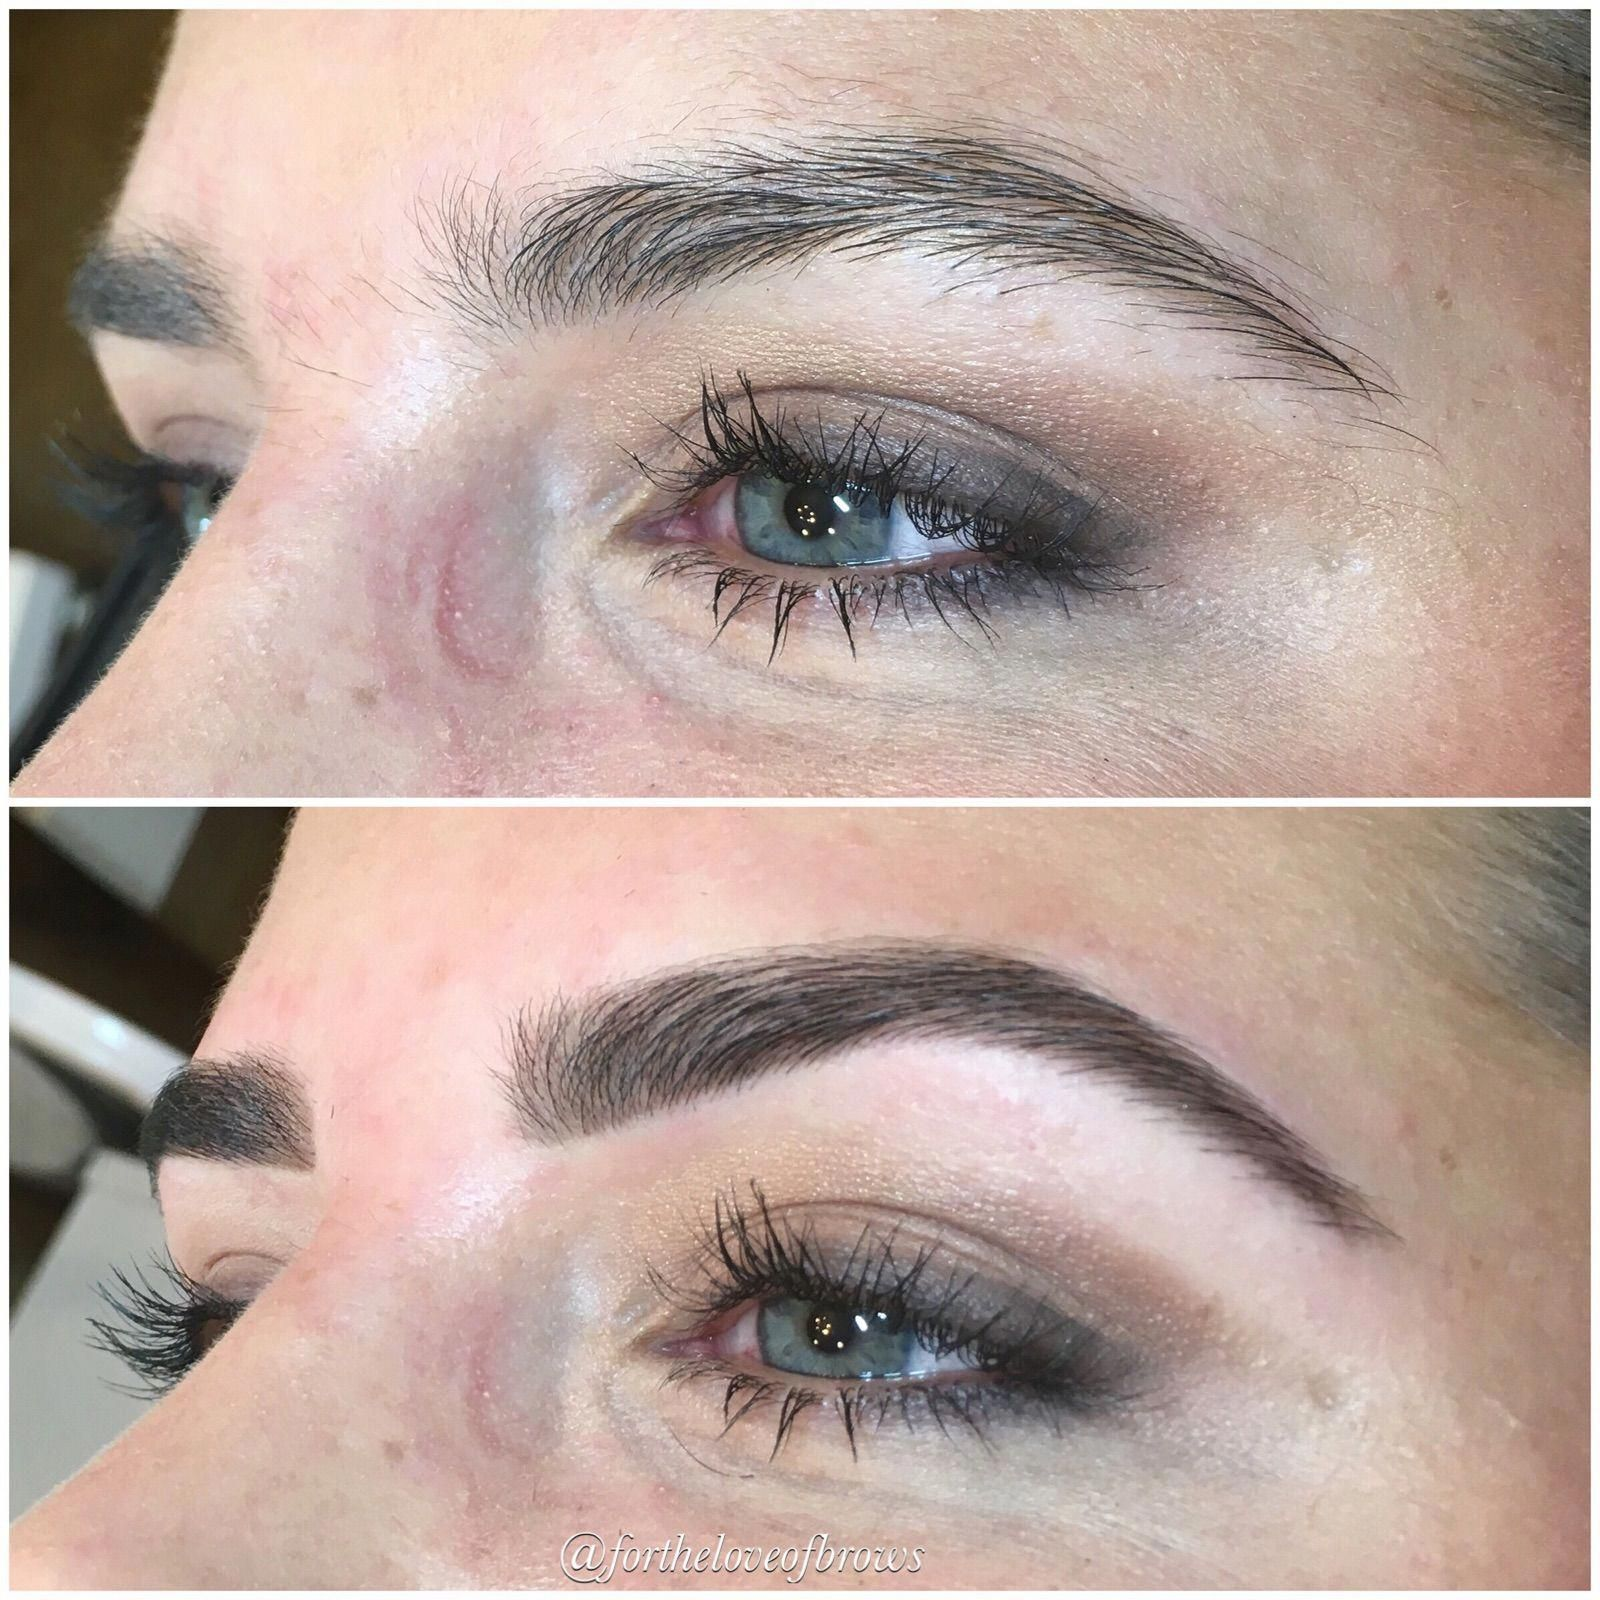 Brow Shaping Performed By Marisa Rios In Chandler Arizona With